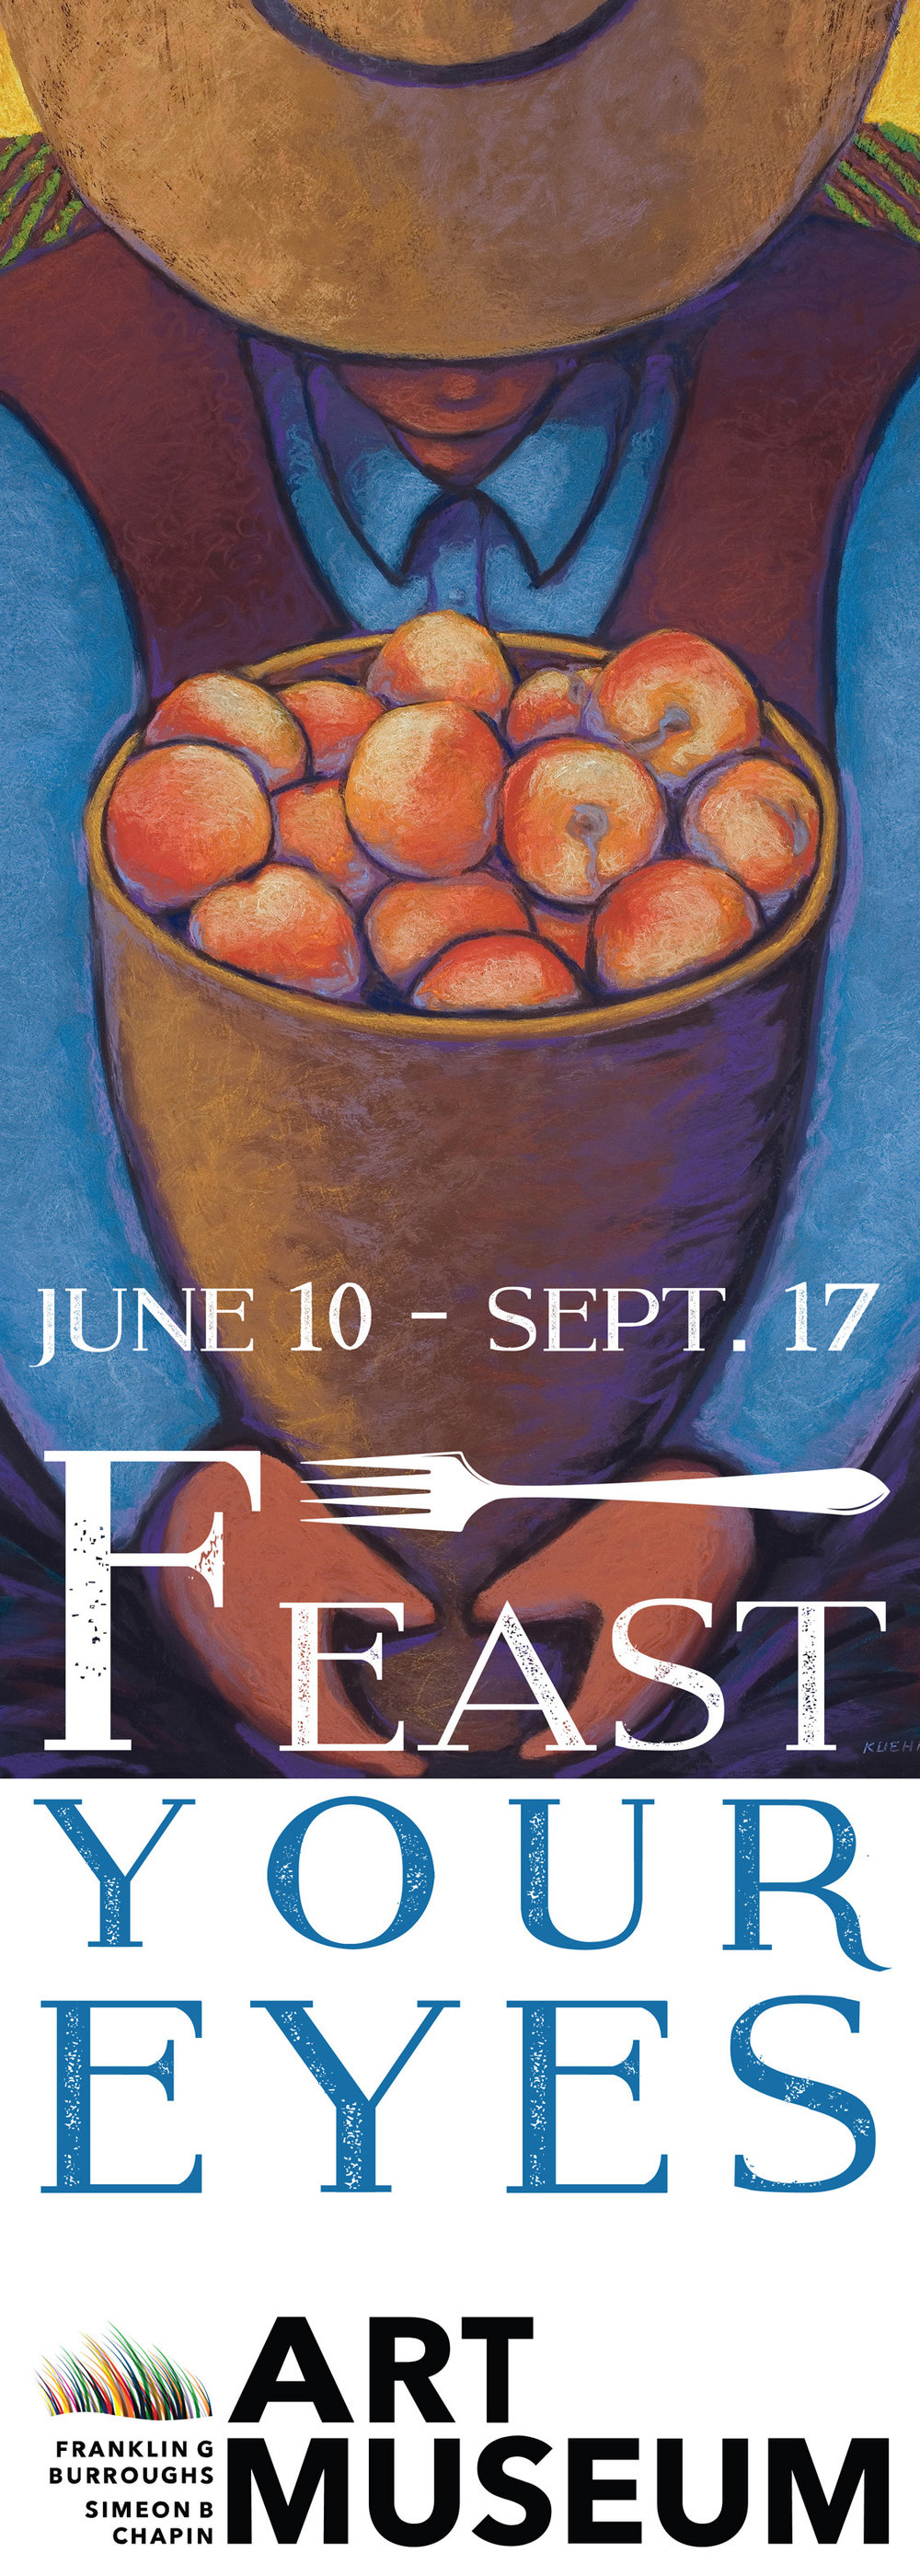 "Myrtle Beach Art Museum Summer 2017   I had 2 of my paintings selected to be a part of the ""Feast Your Eyes"" Exhibit, Celebrating the foods of the south through art. My Peach Harvest"" painting was also used for the banners to promote the show."